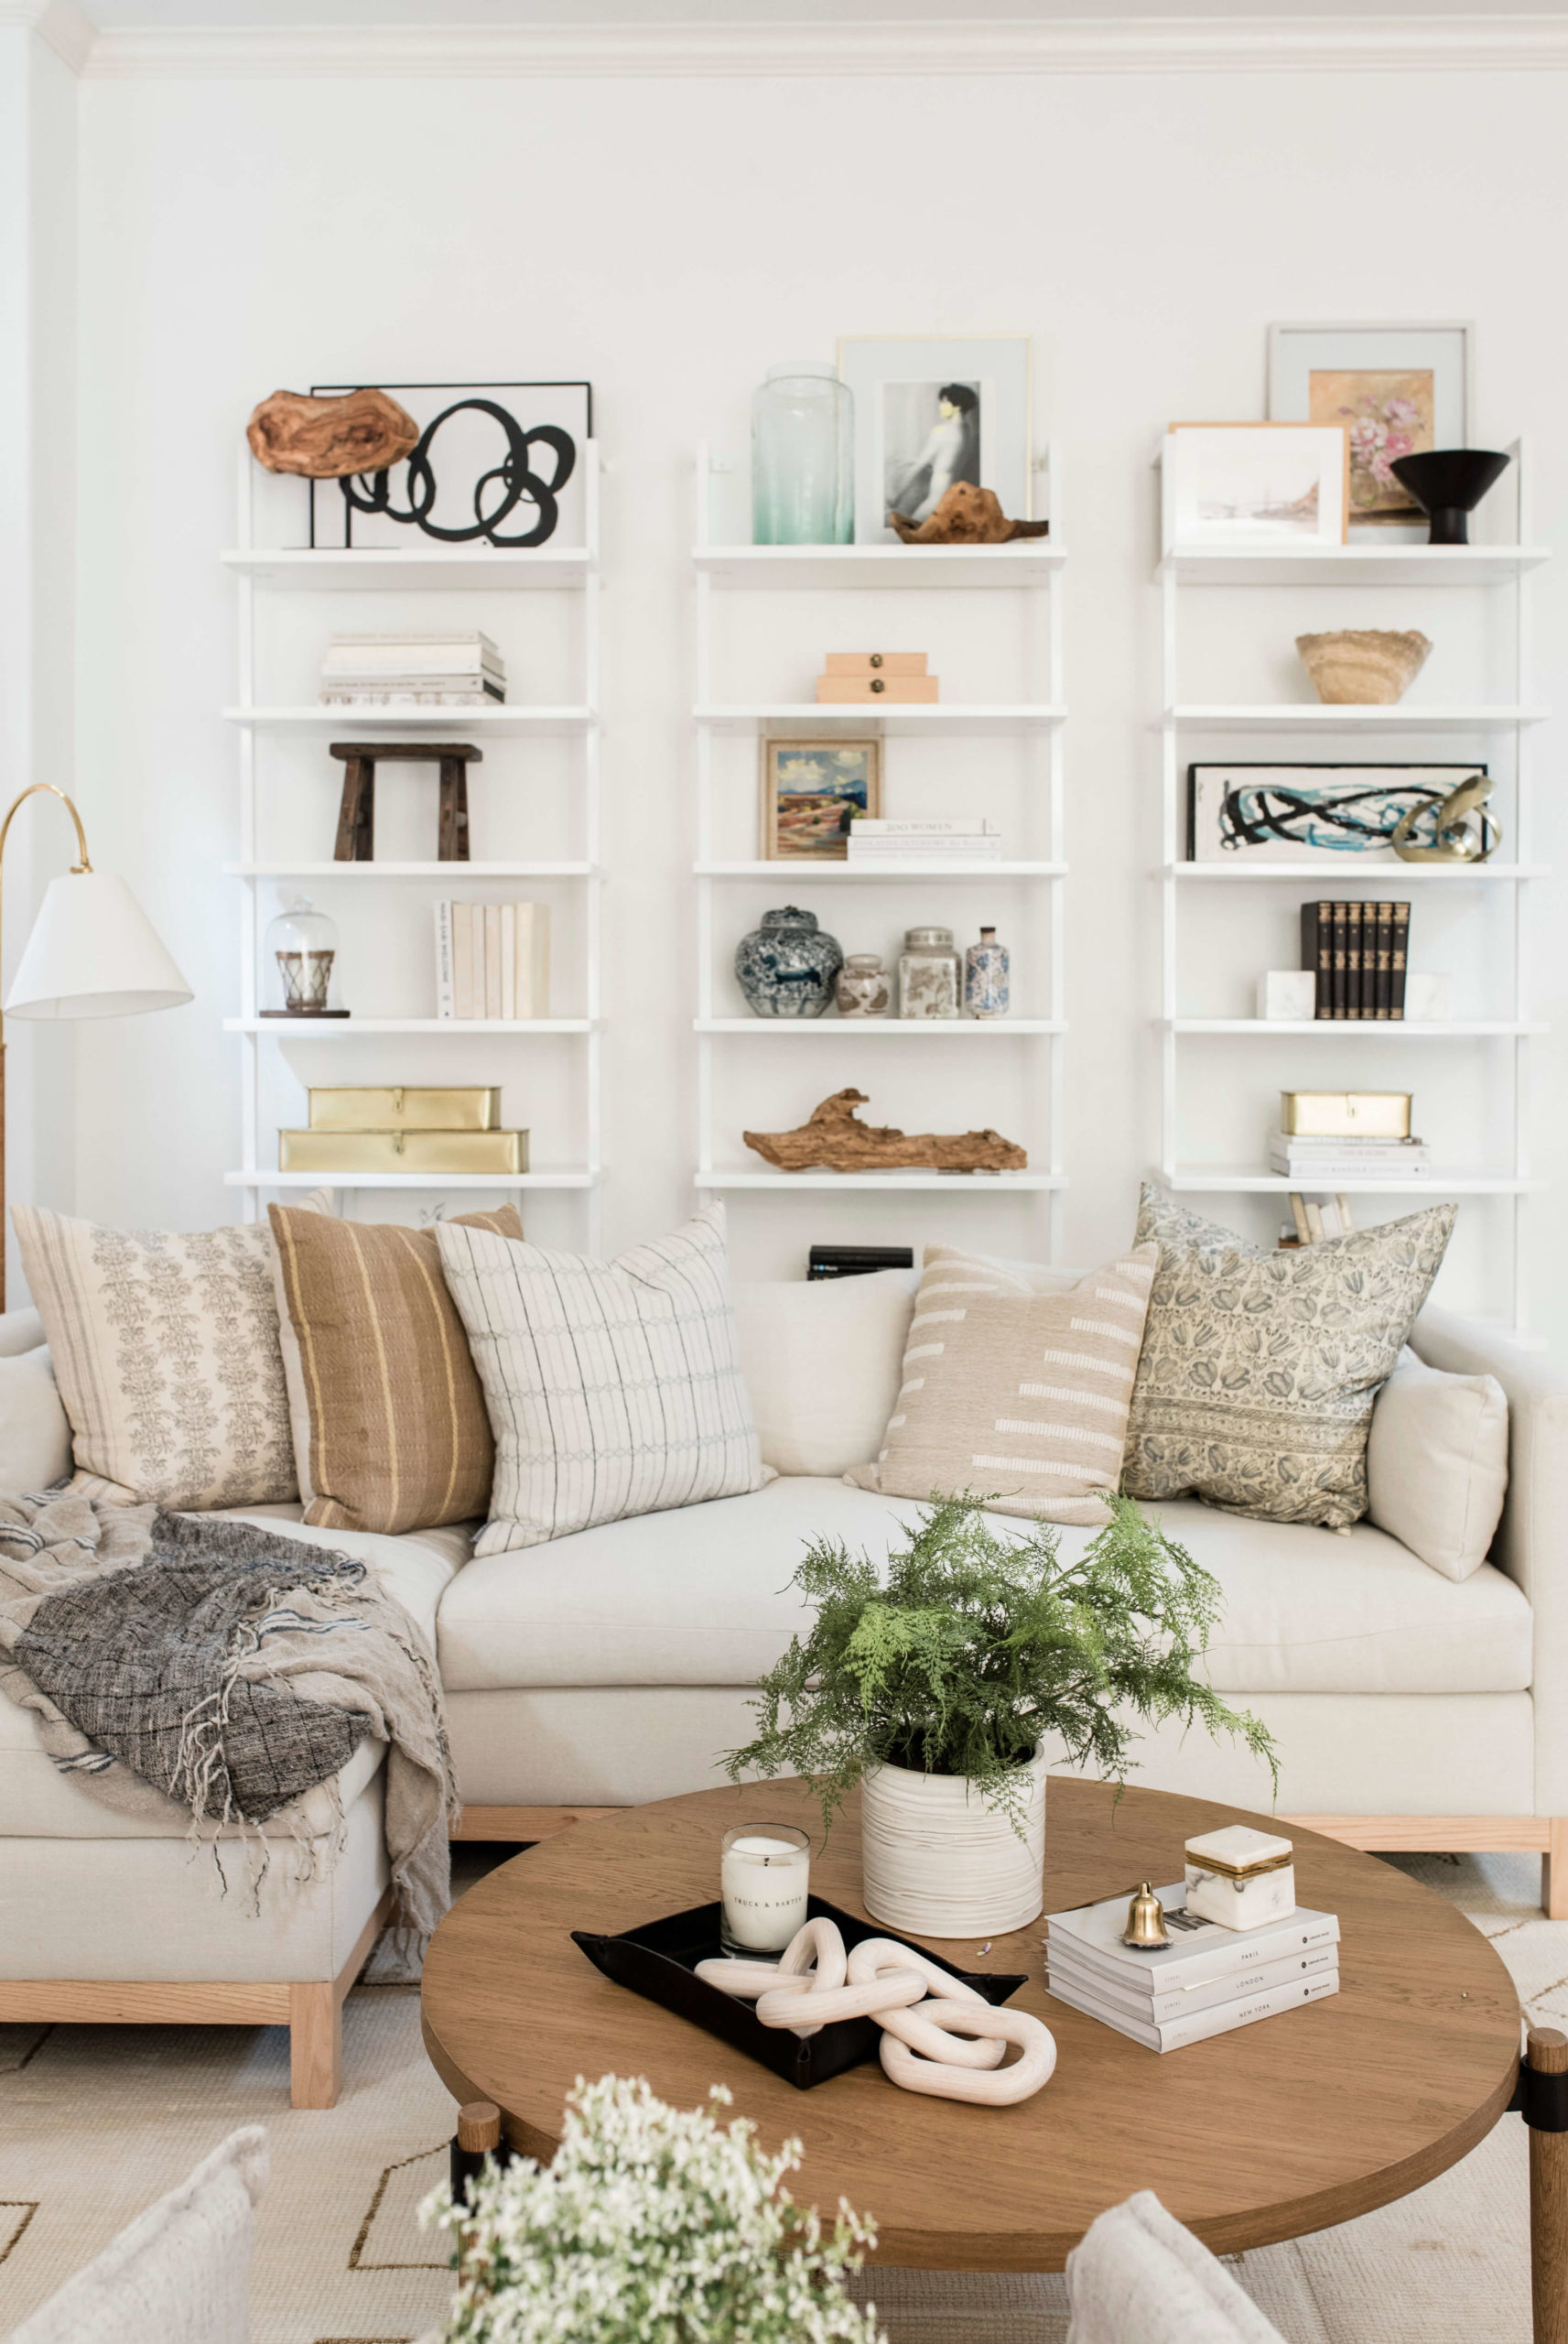 Bookcase Styling in Living Room GMDxLG Furniture Collection Hollingworth Sofa by Los Angeles Designer Ginny Macdonald Design